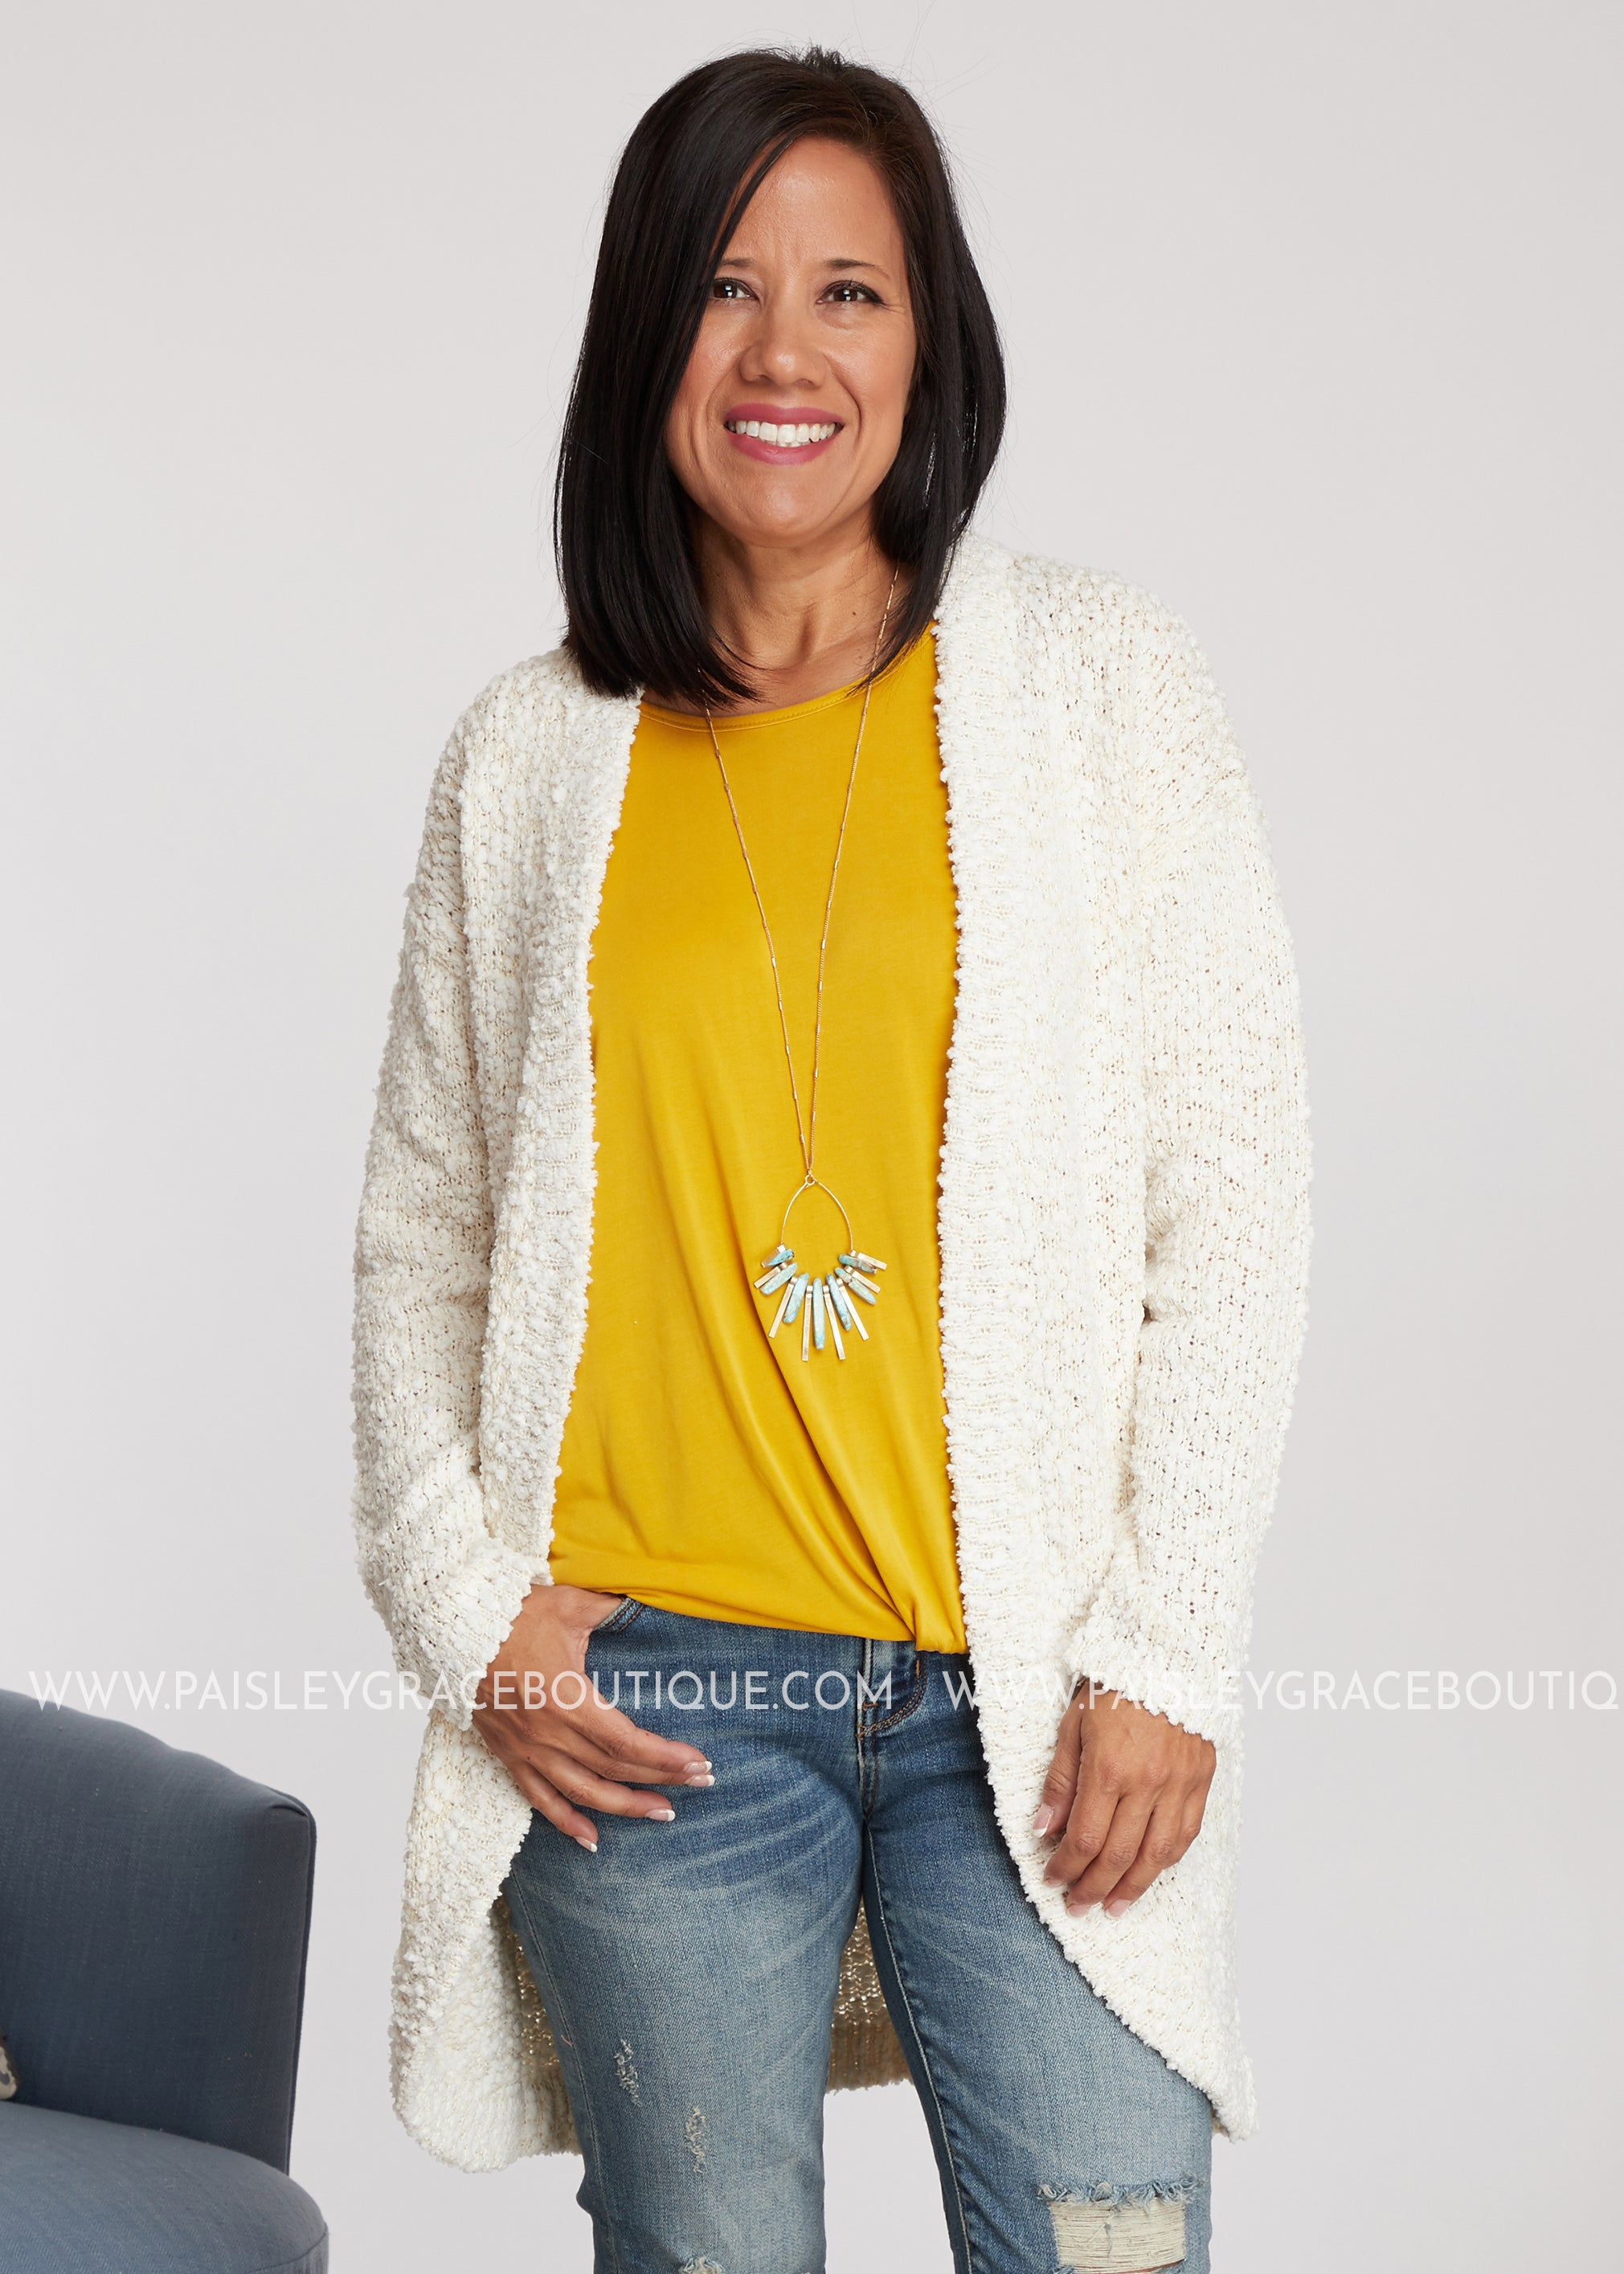 Shining Moment Cardigan